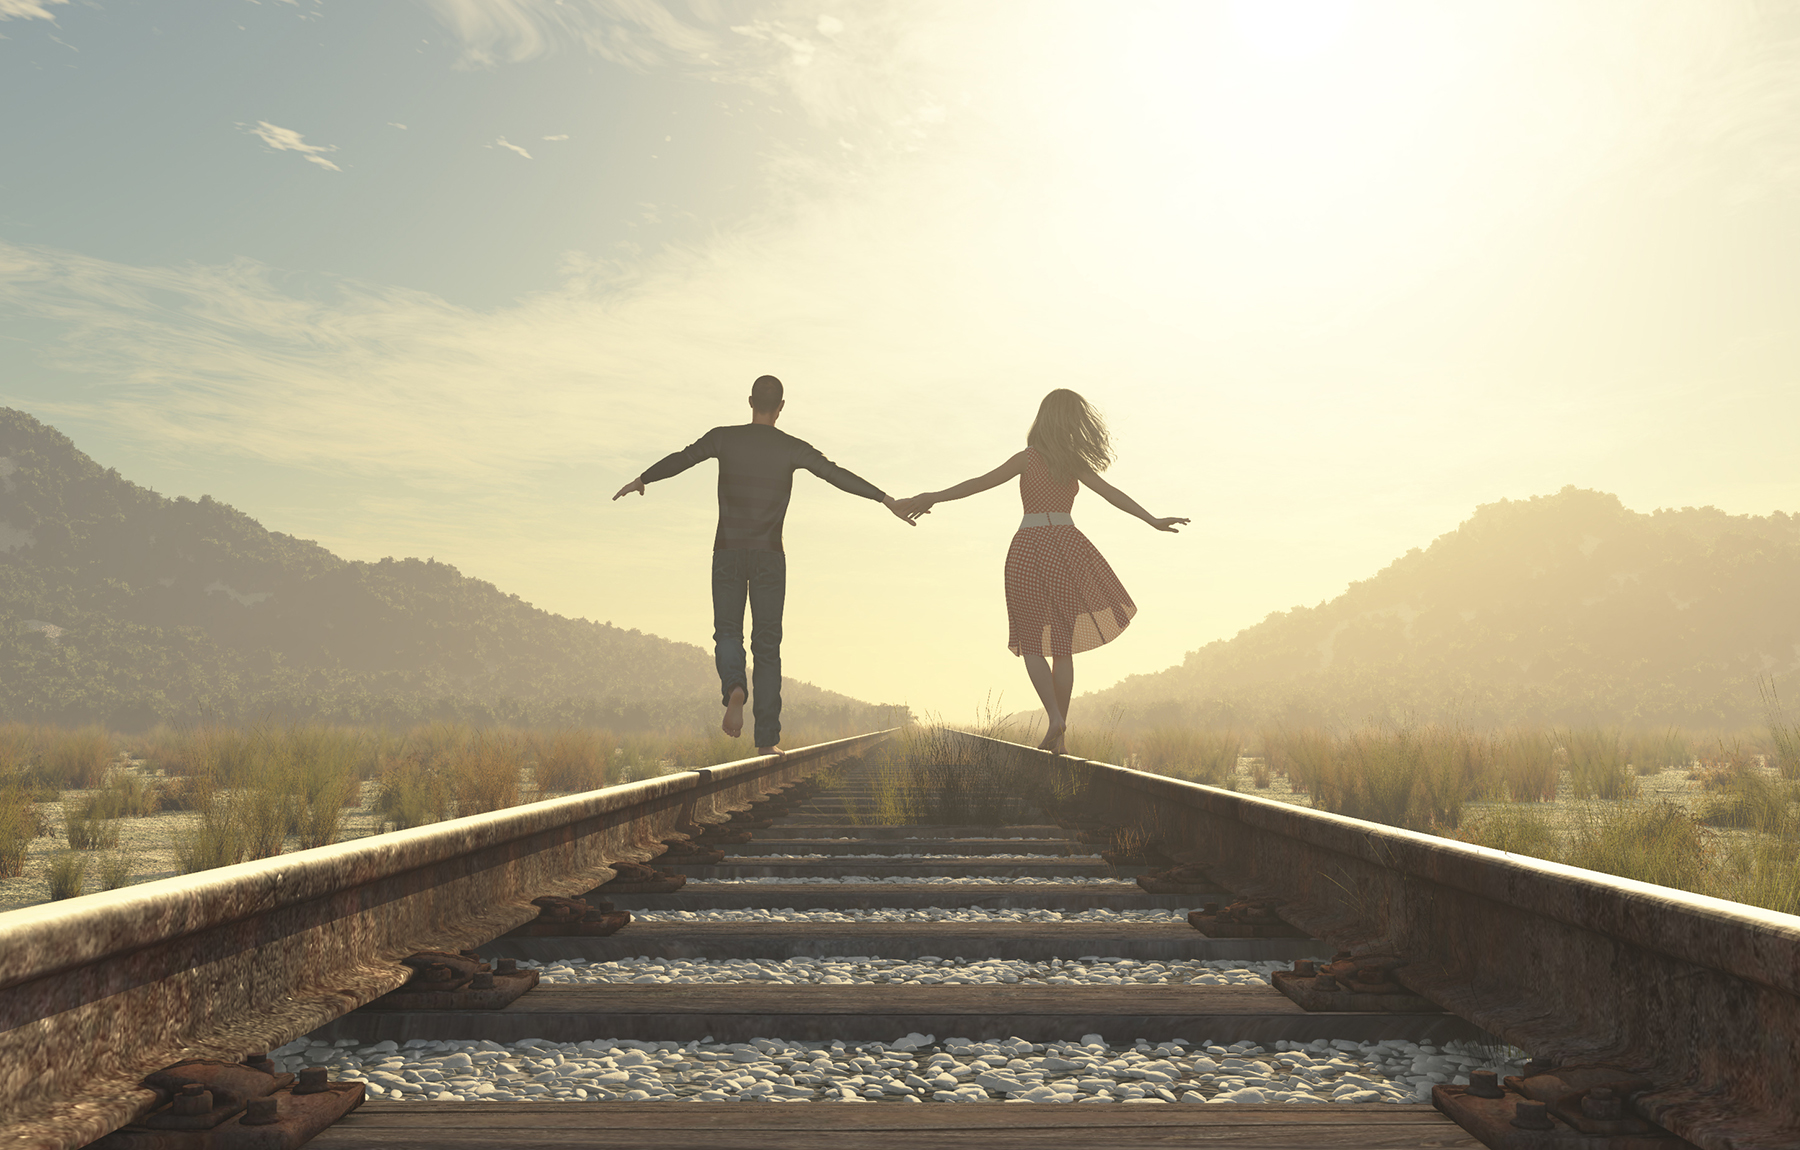 Couples in Ministry: A Balancing Act